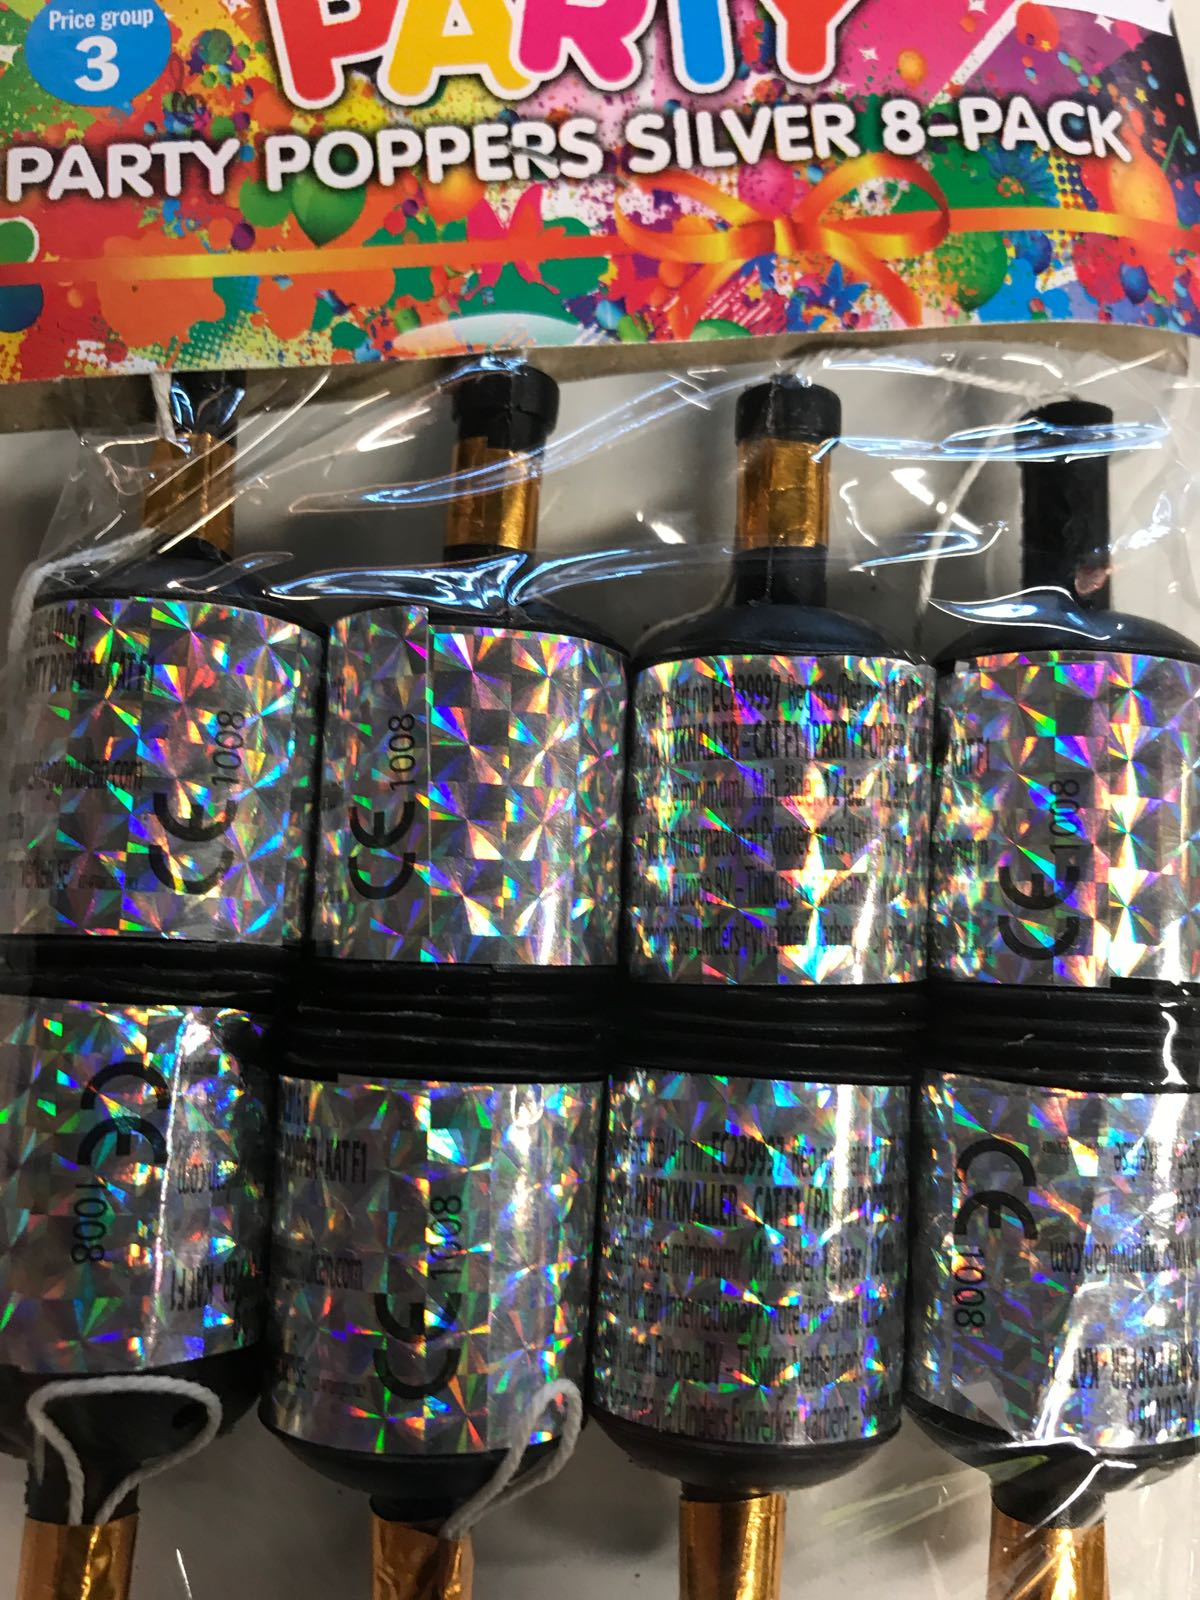 Party poppers silver